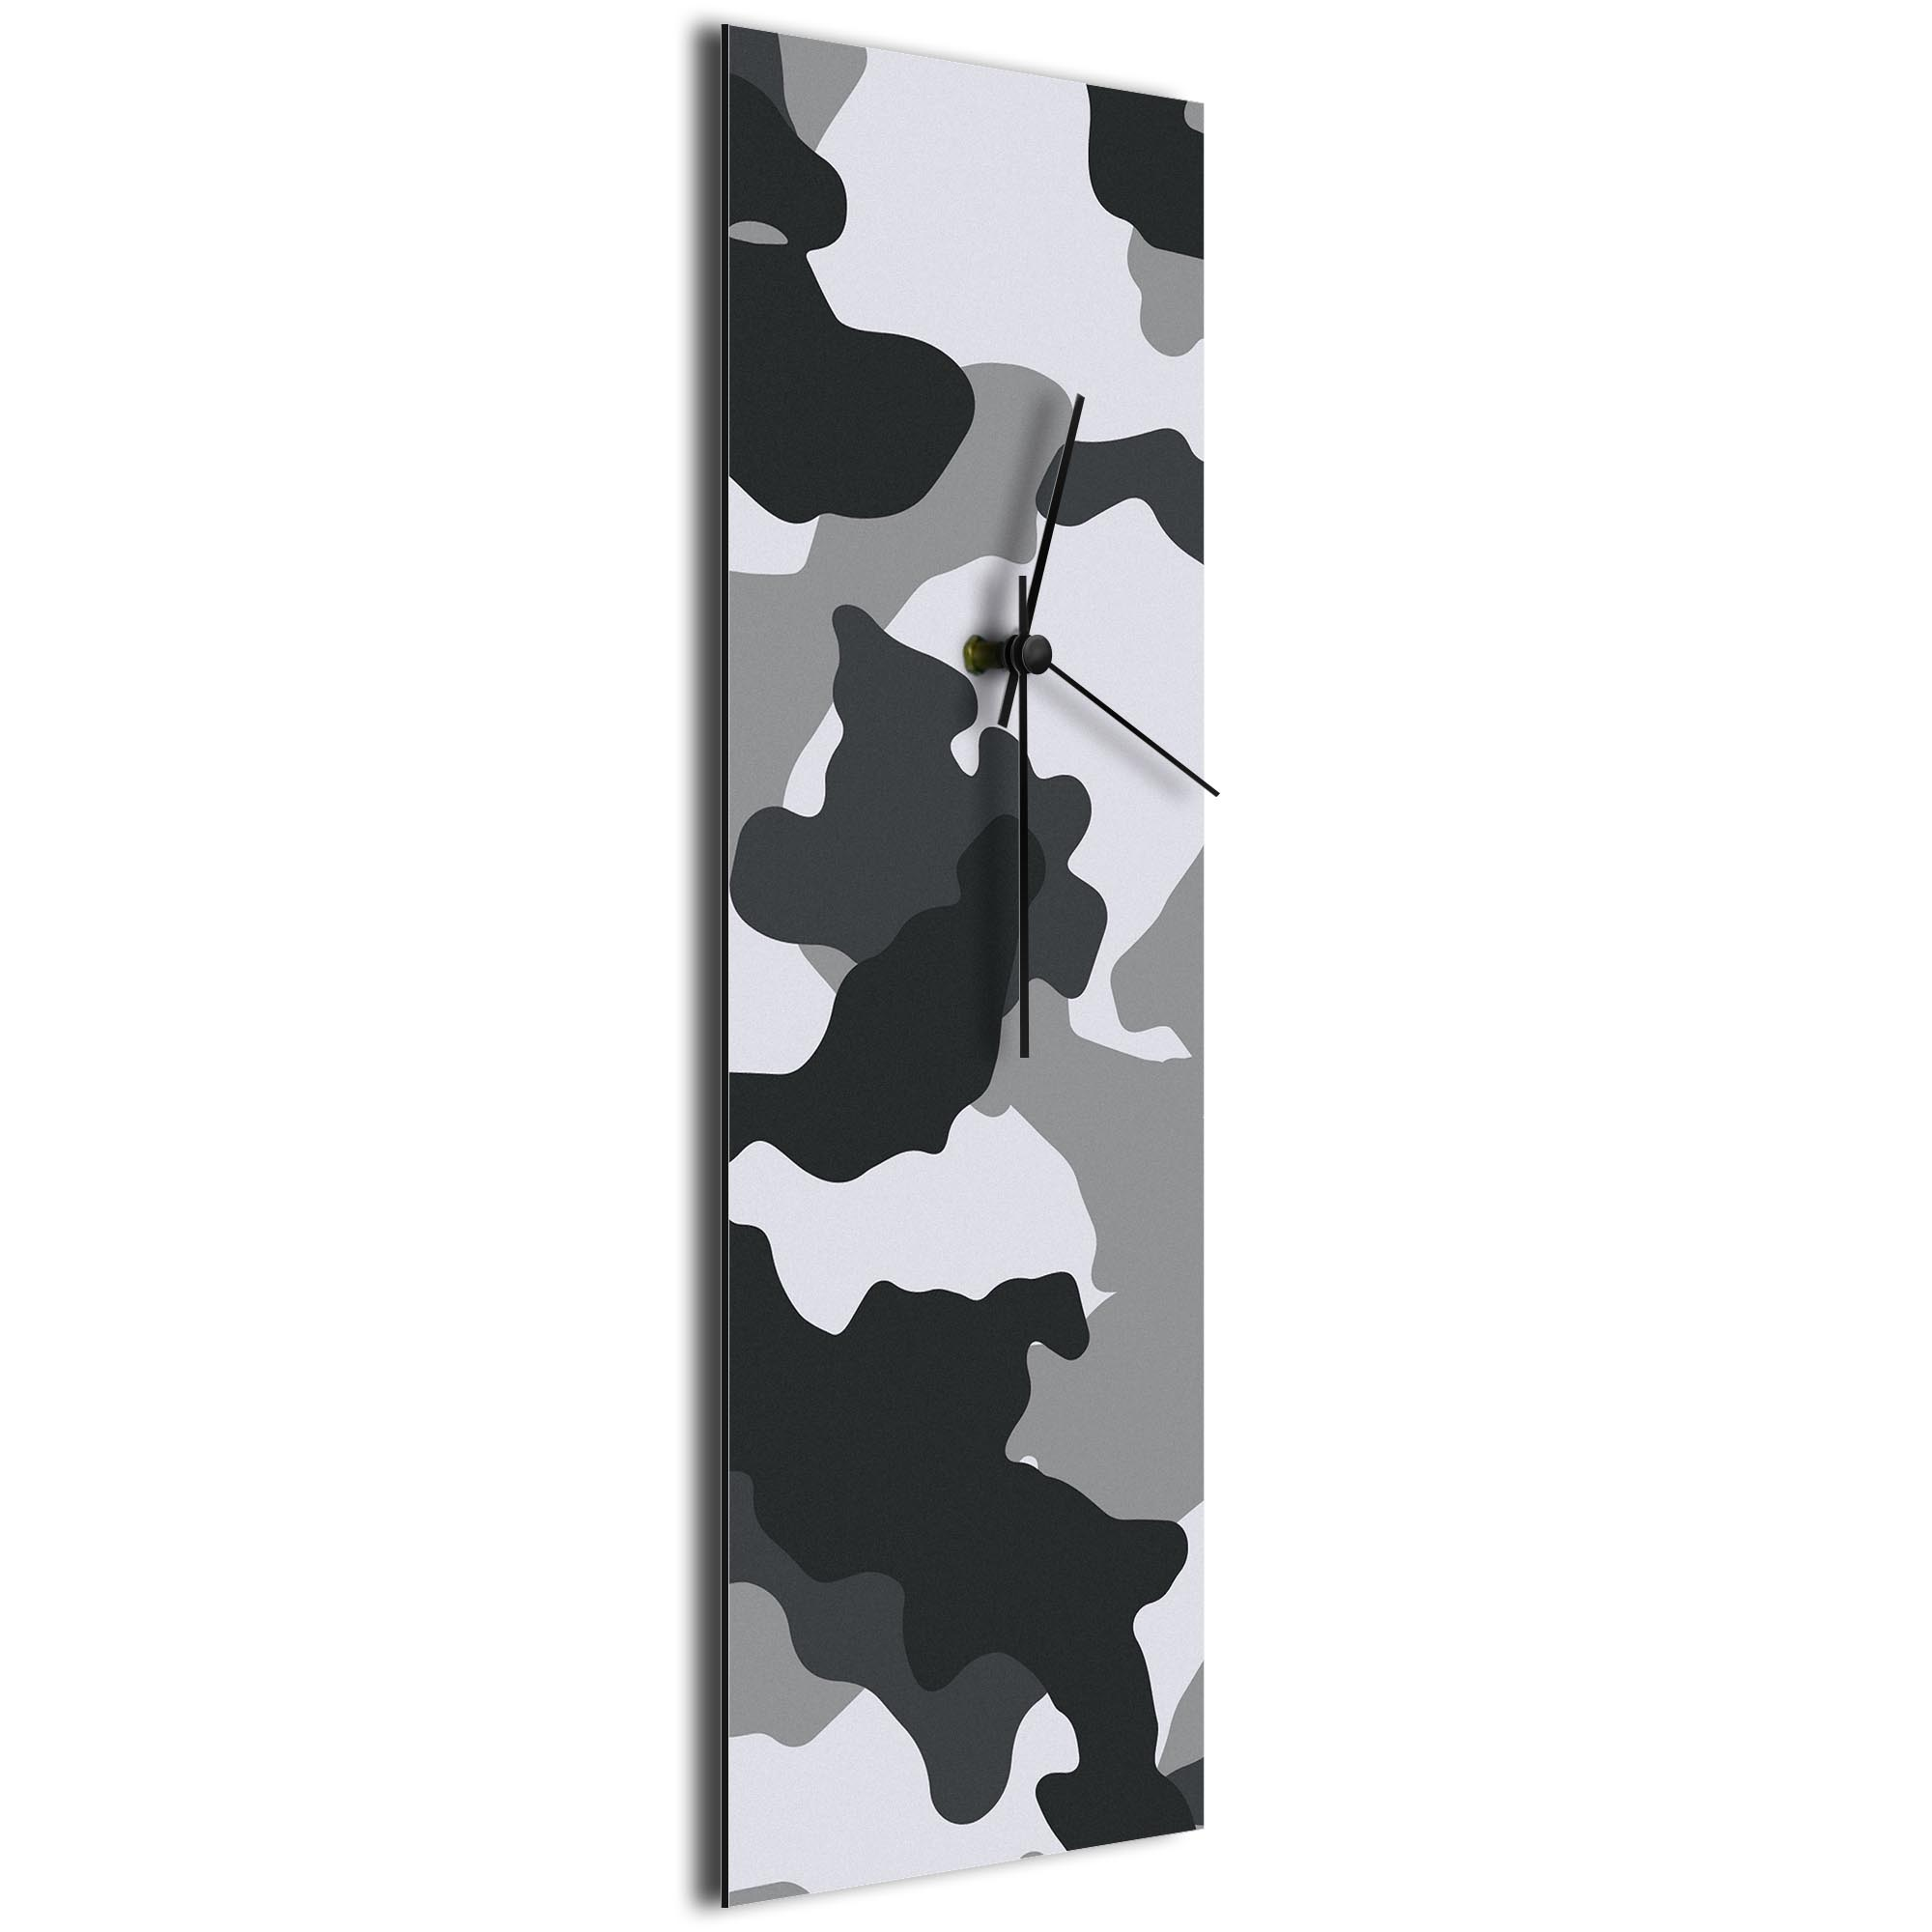 Urban Camo Clock v1 by NAY - Camouflage Modern Wall Clock - Image 2